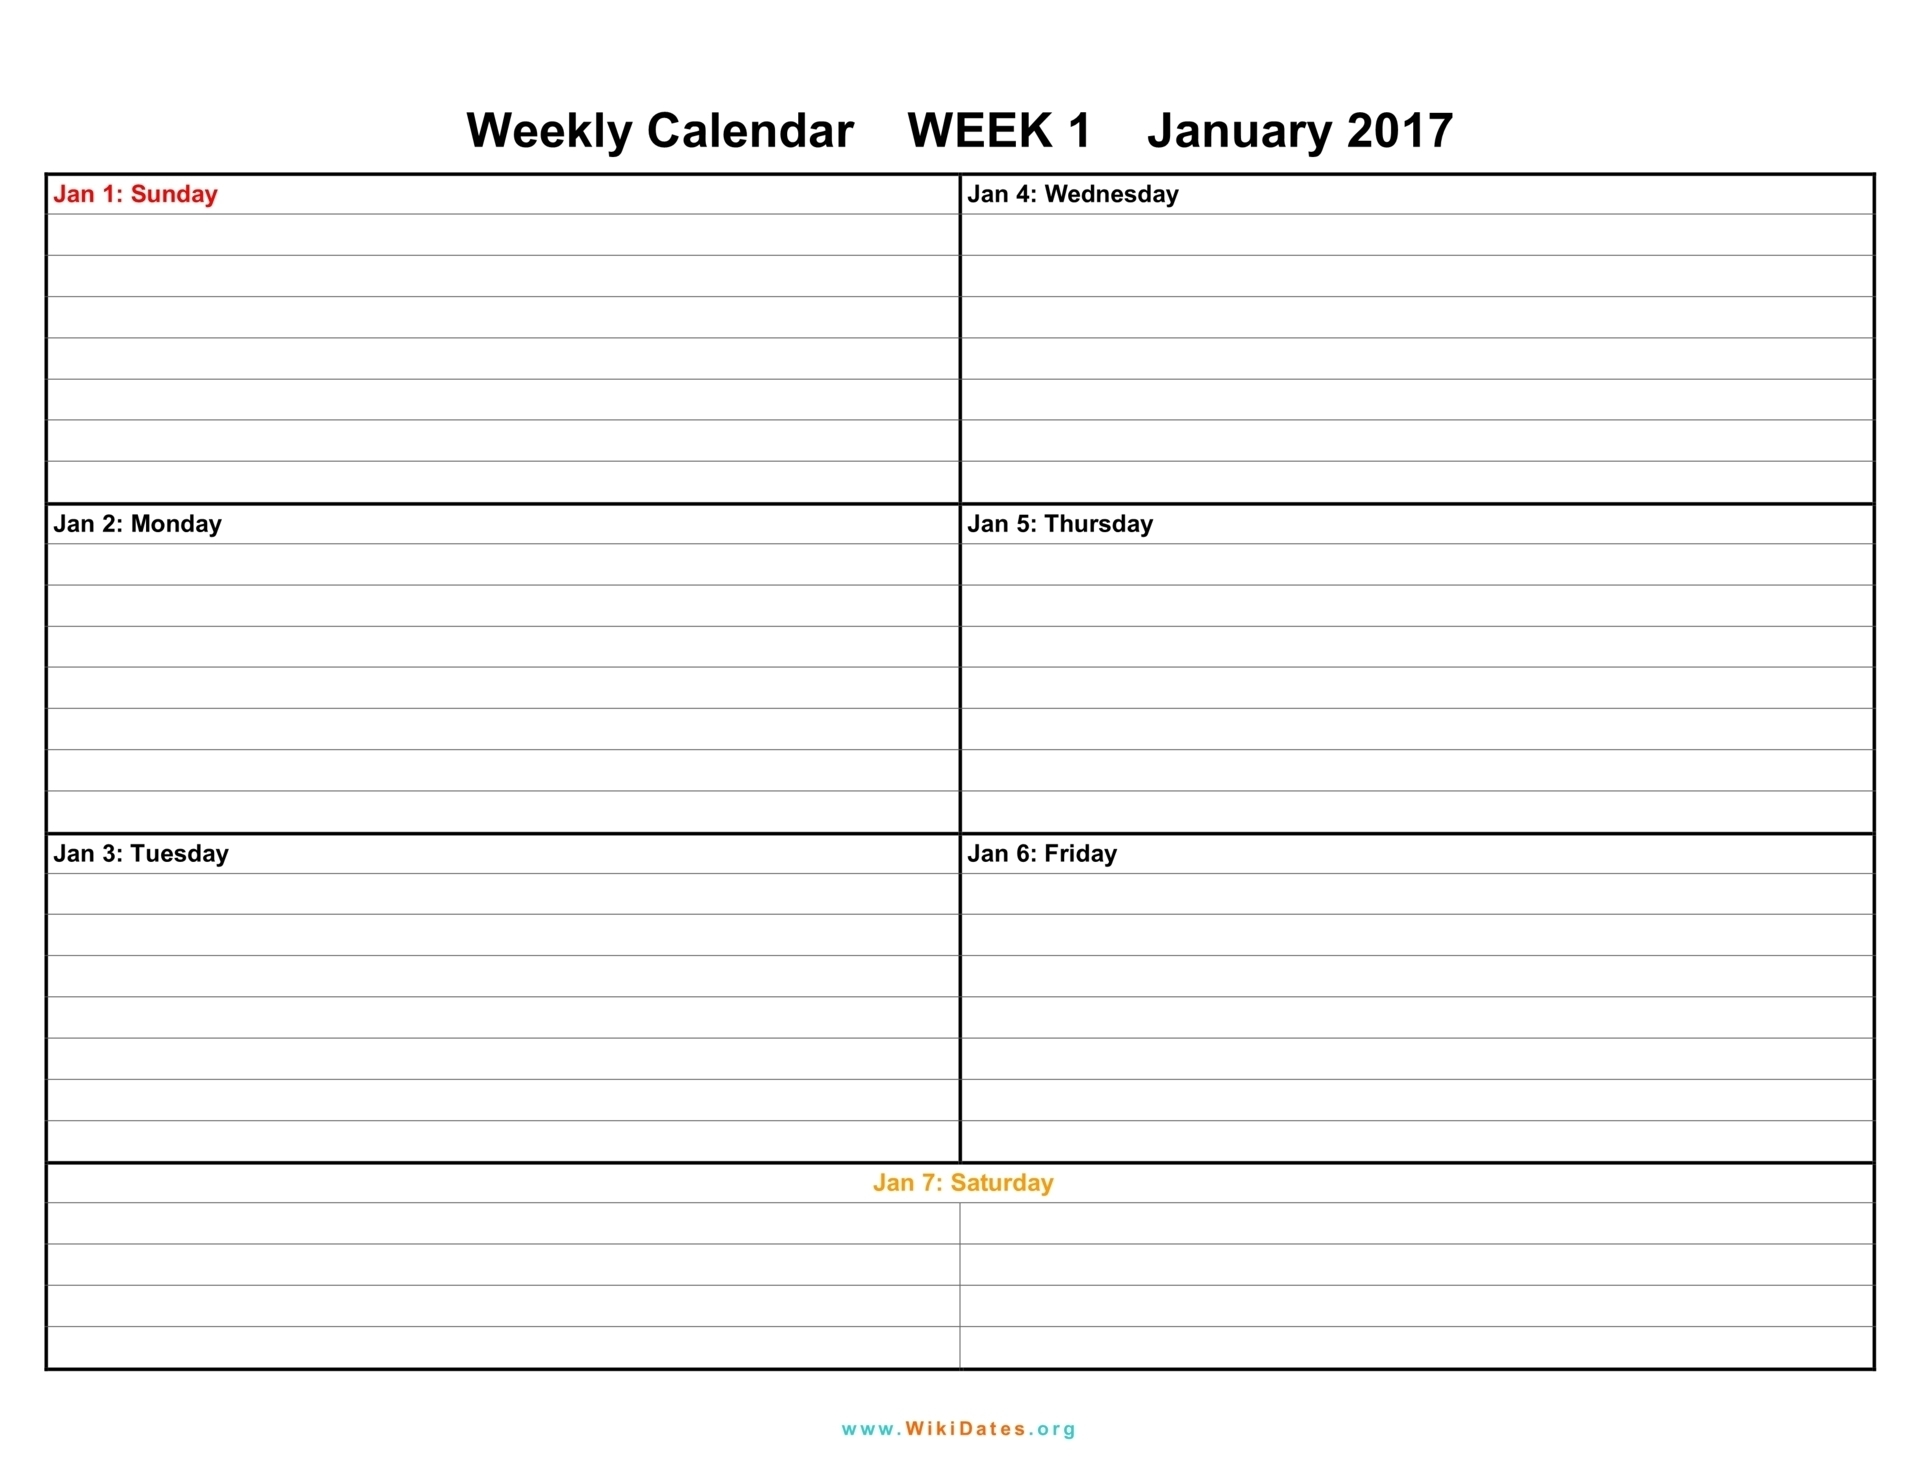 One Week Printable Calendar | Hauck Mansion pertaining to One Week Blank Calendar Printable